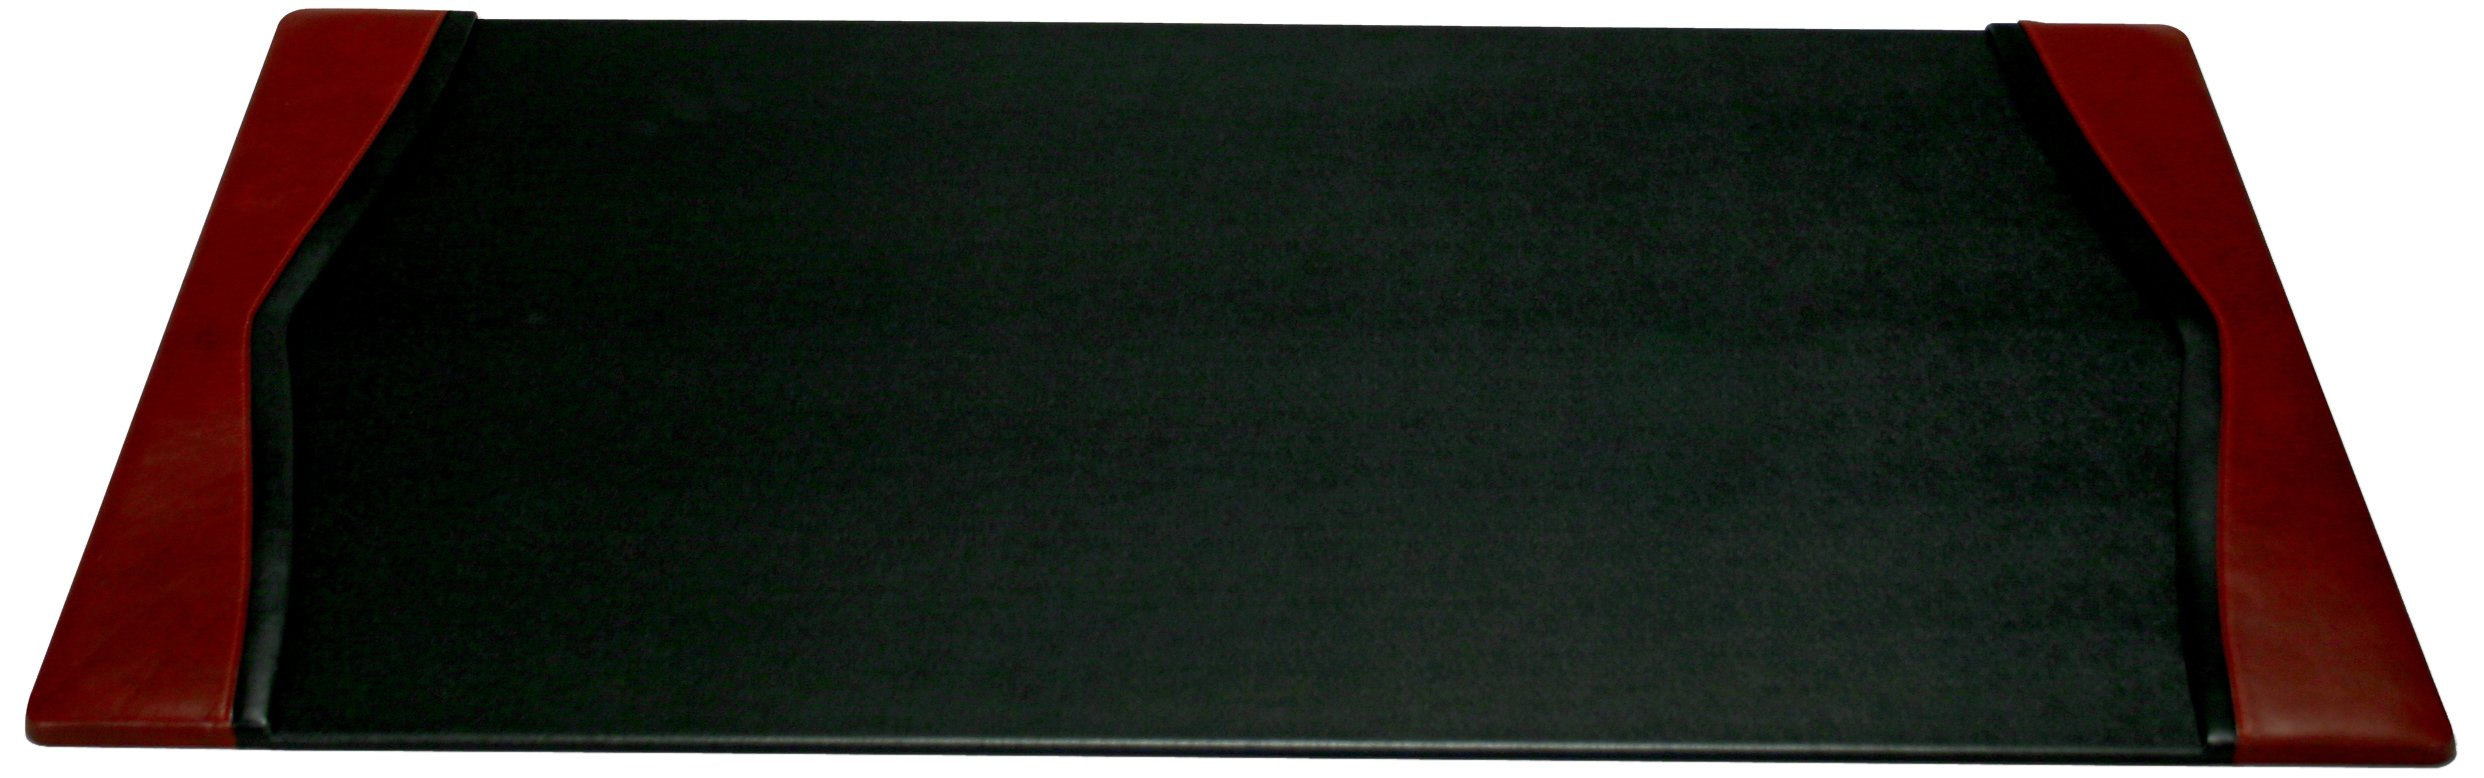 Dacasso Burgundy Desk Pad with Side-rails,34 by 20 Inch